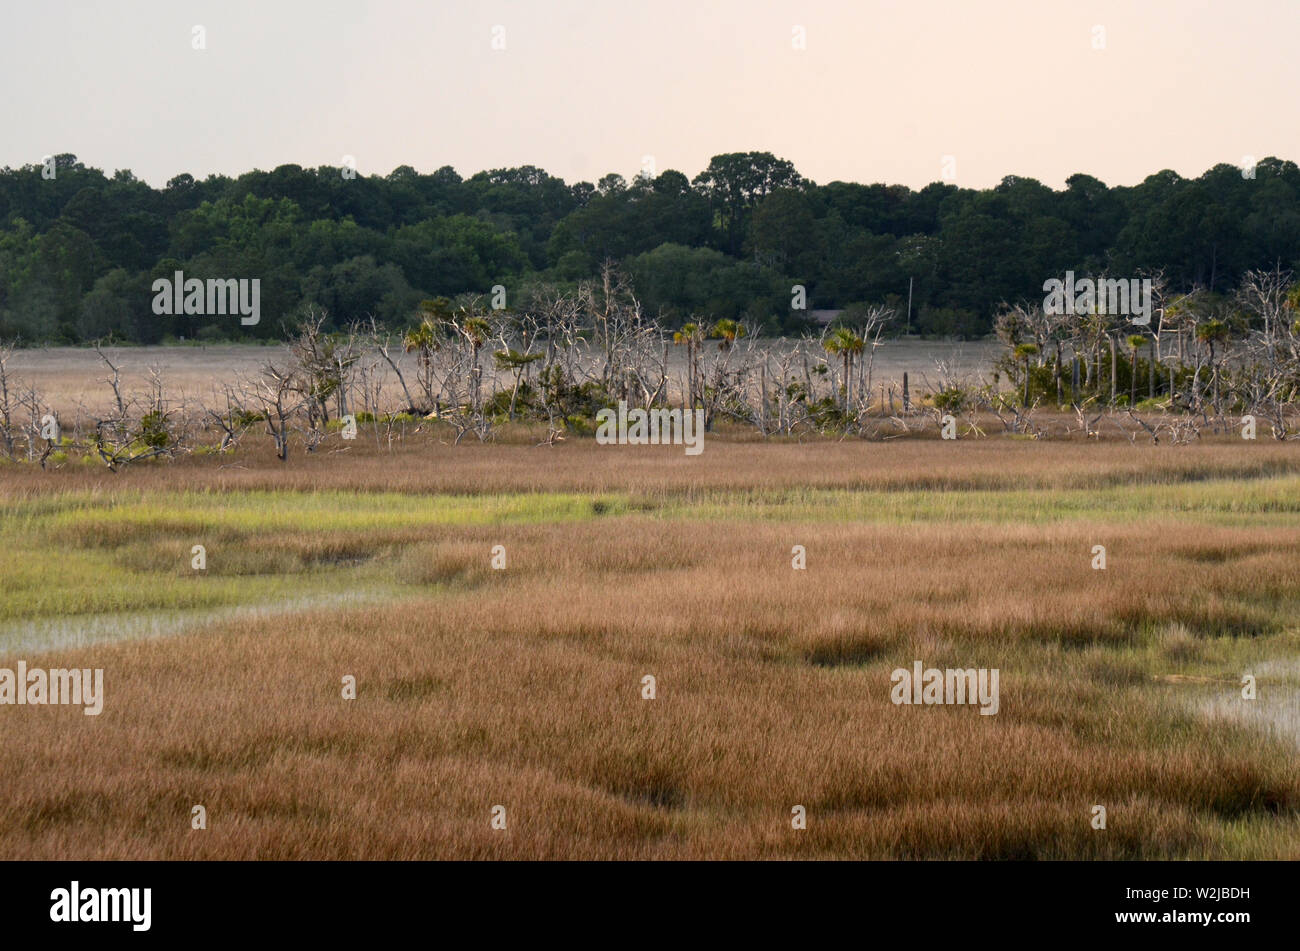 DEADWOOD VALLEY Swampland and marshes filled with patches of petrified trees is a scene very common in beautifully scenic Savannah, Georgia. - Stock Image